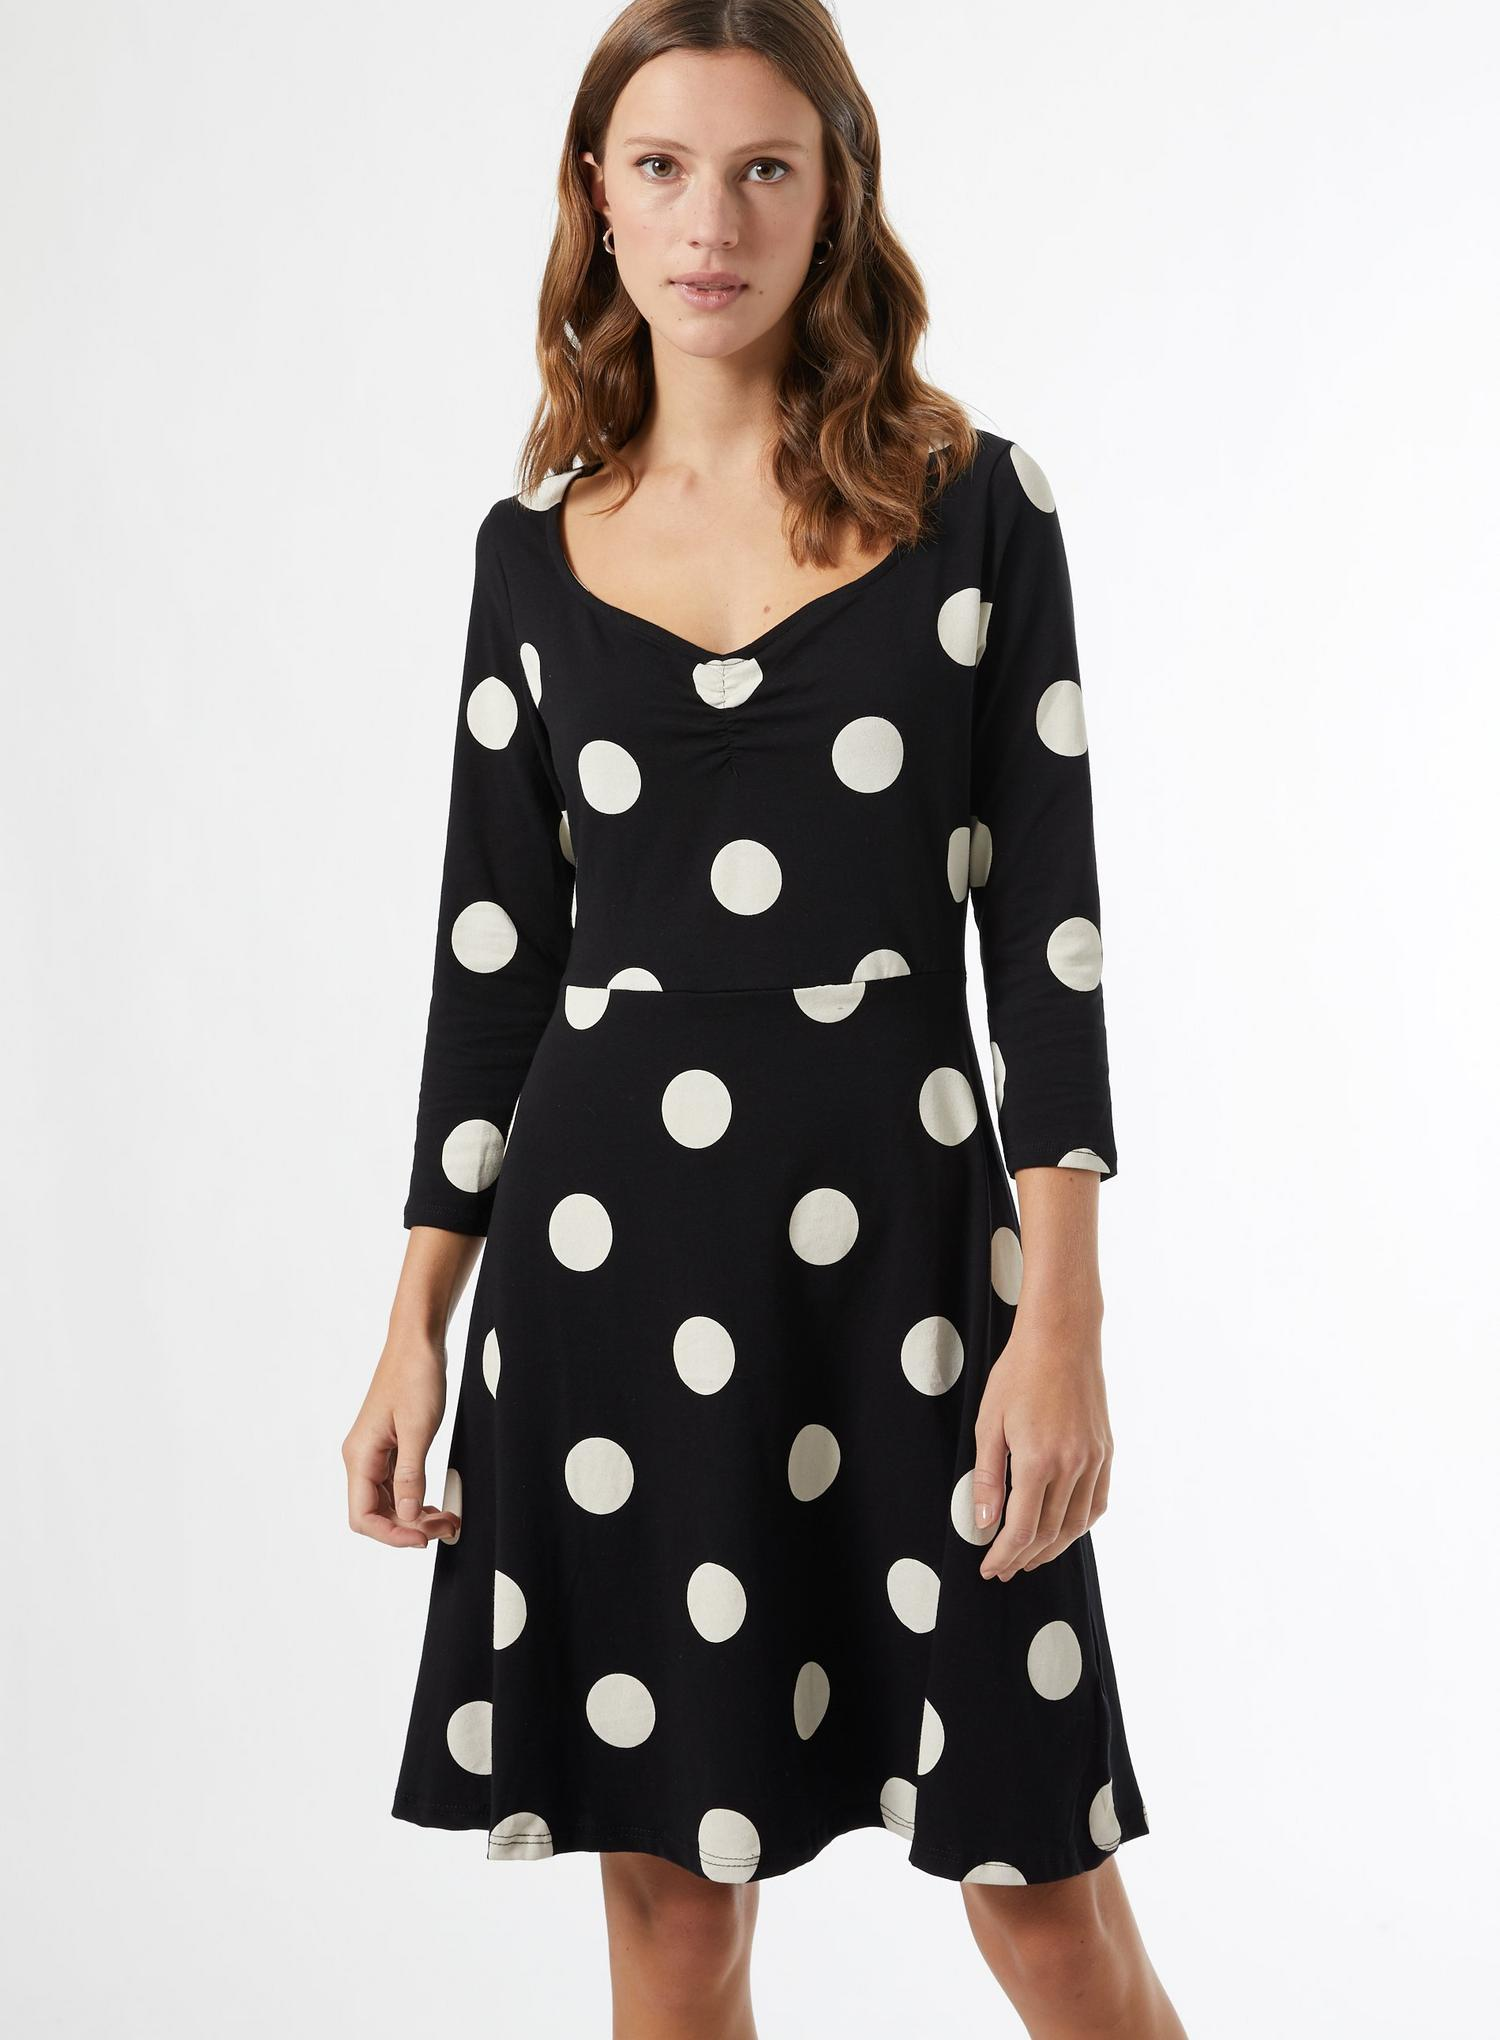 105 Black Spot Ruched Organic Cotton Mini Dress image number 2